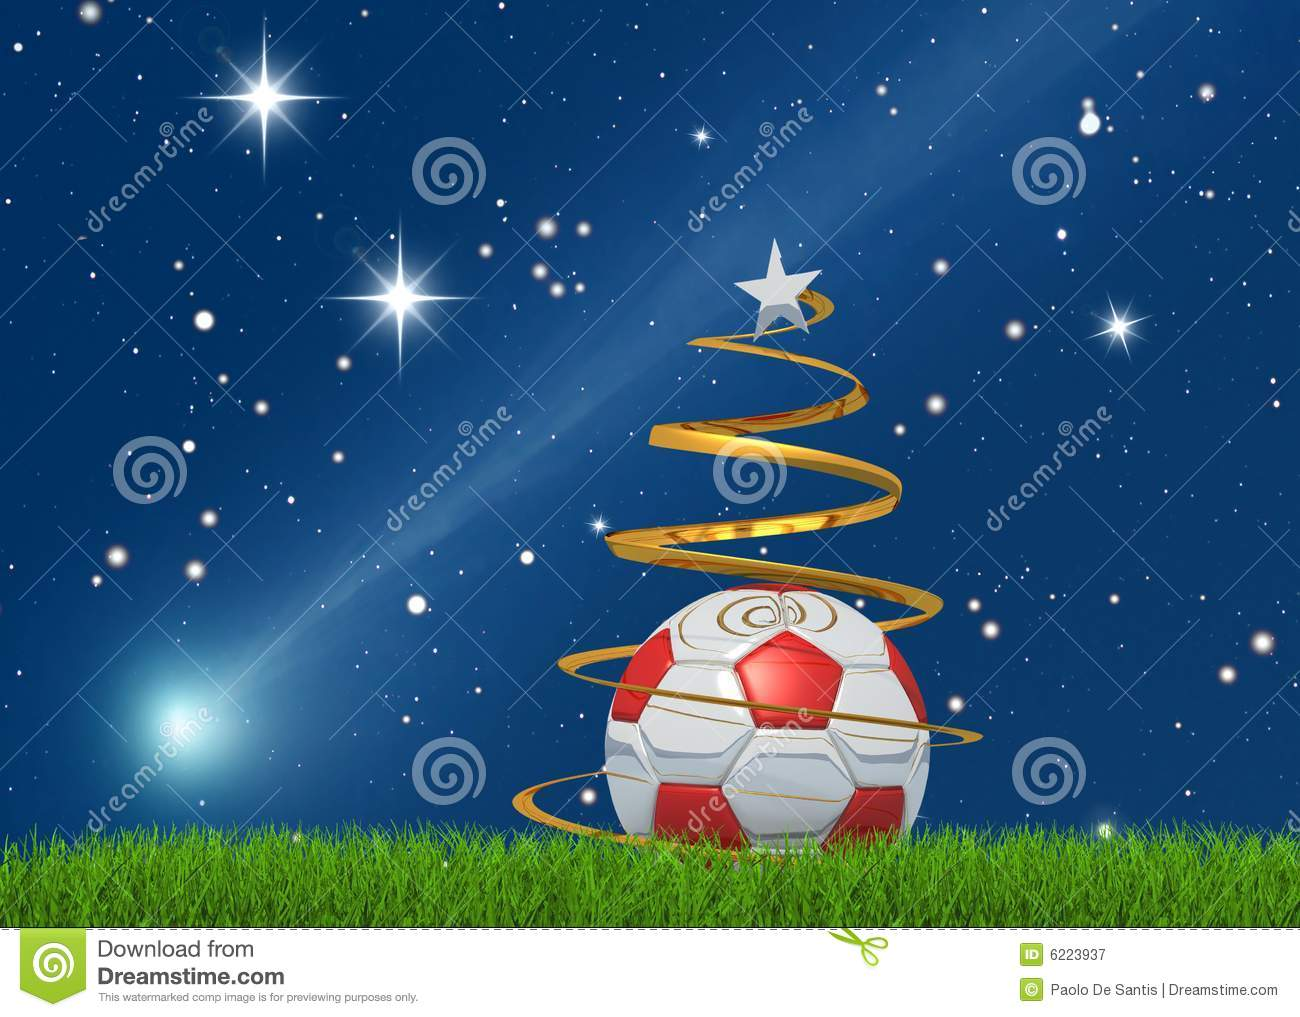 Christmas Soccerball And Comet Royalty Free Stock Photography - Image: 6223937